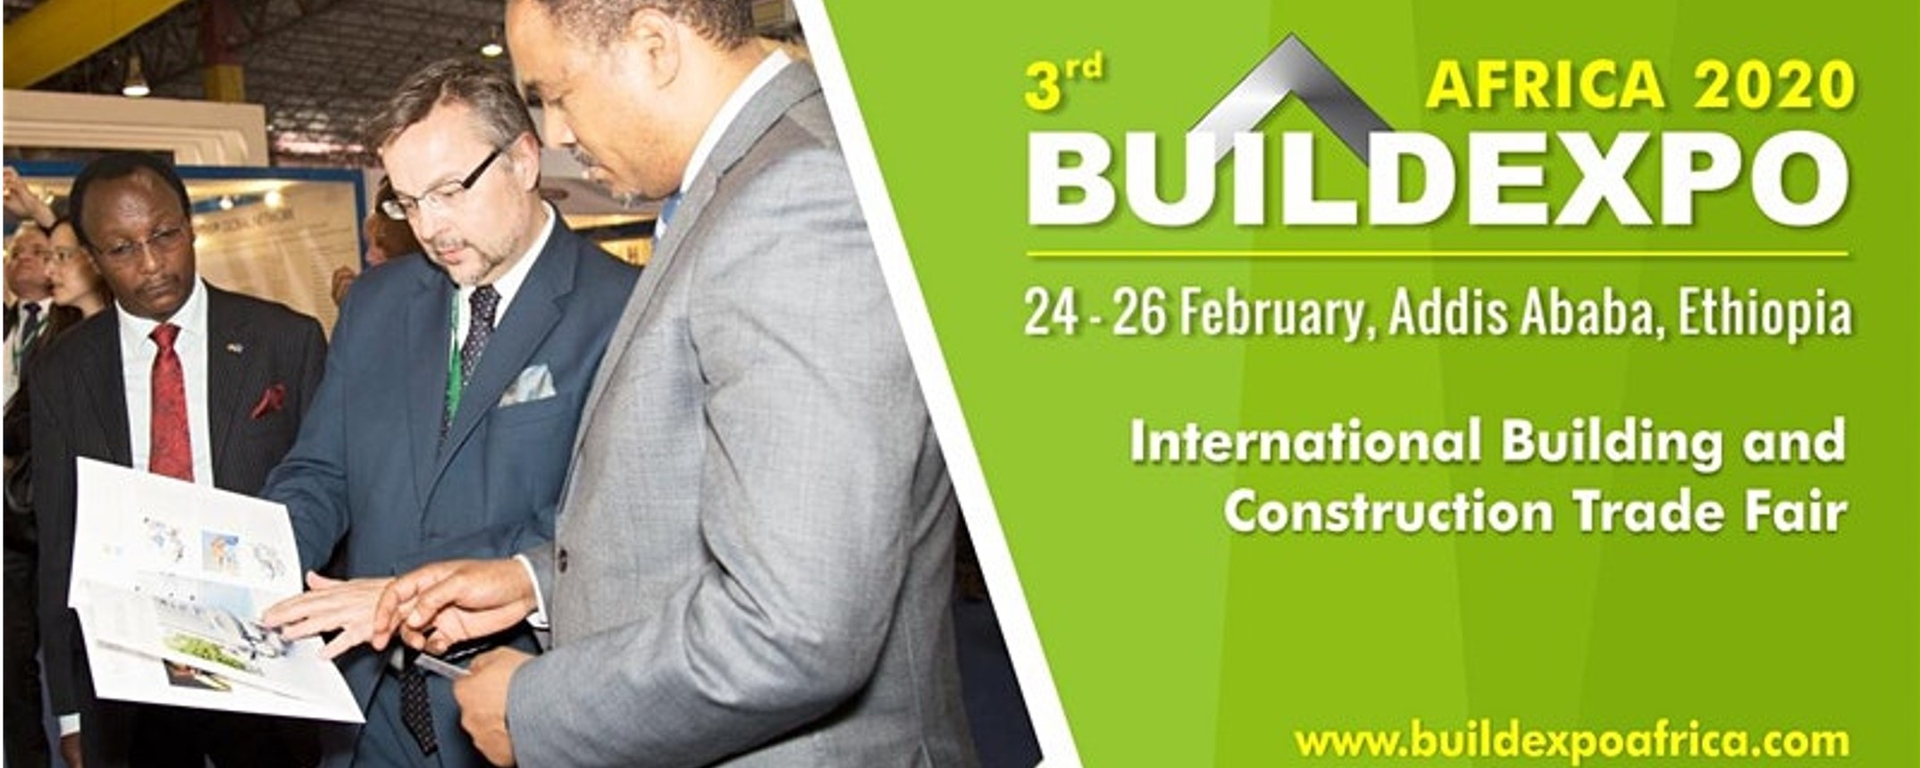 Expogroup - 3rd Buildexpo Ethiopia 2020 Movemeback African event cover image